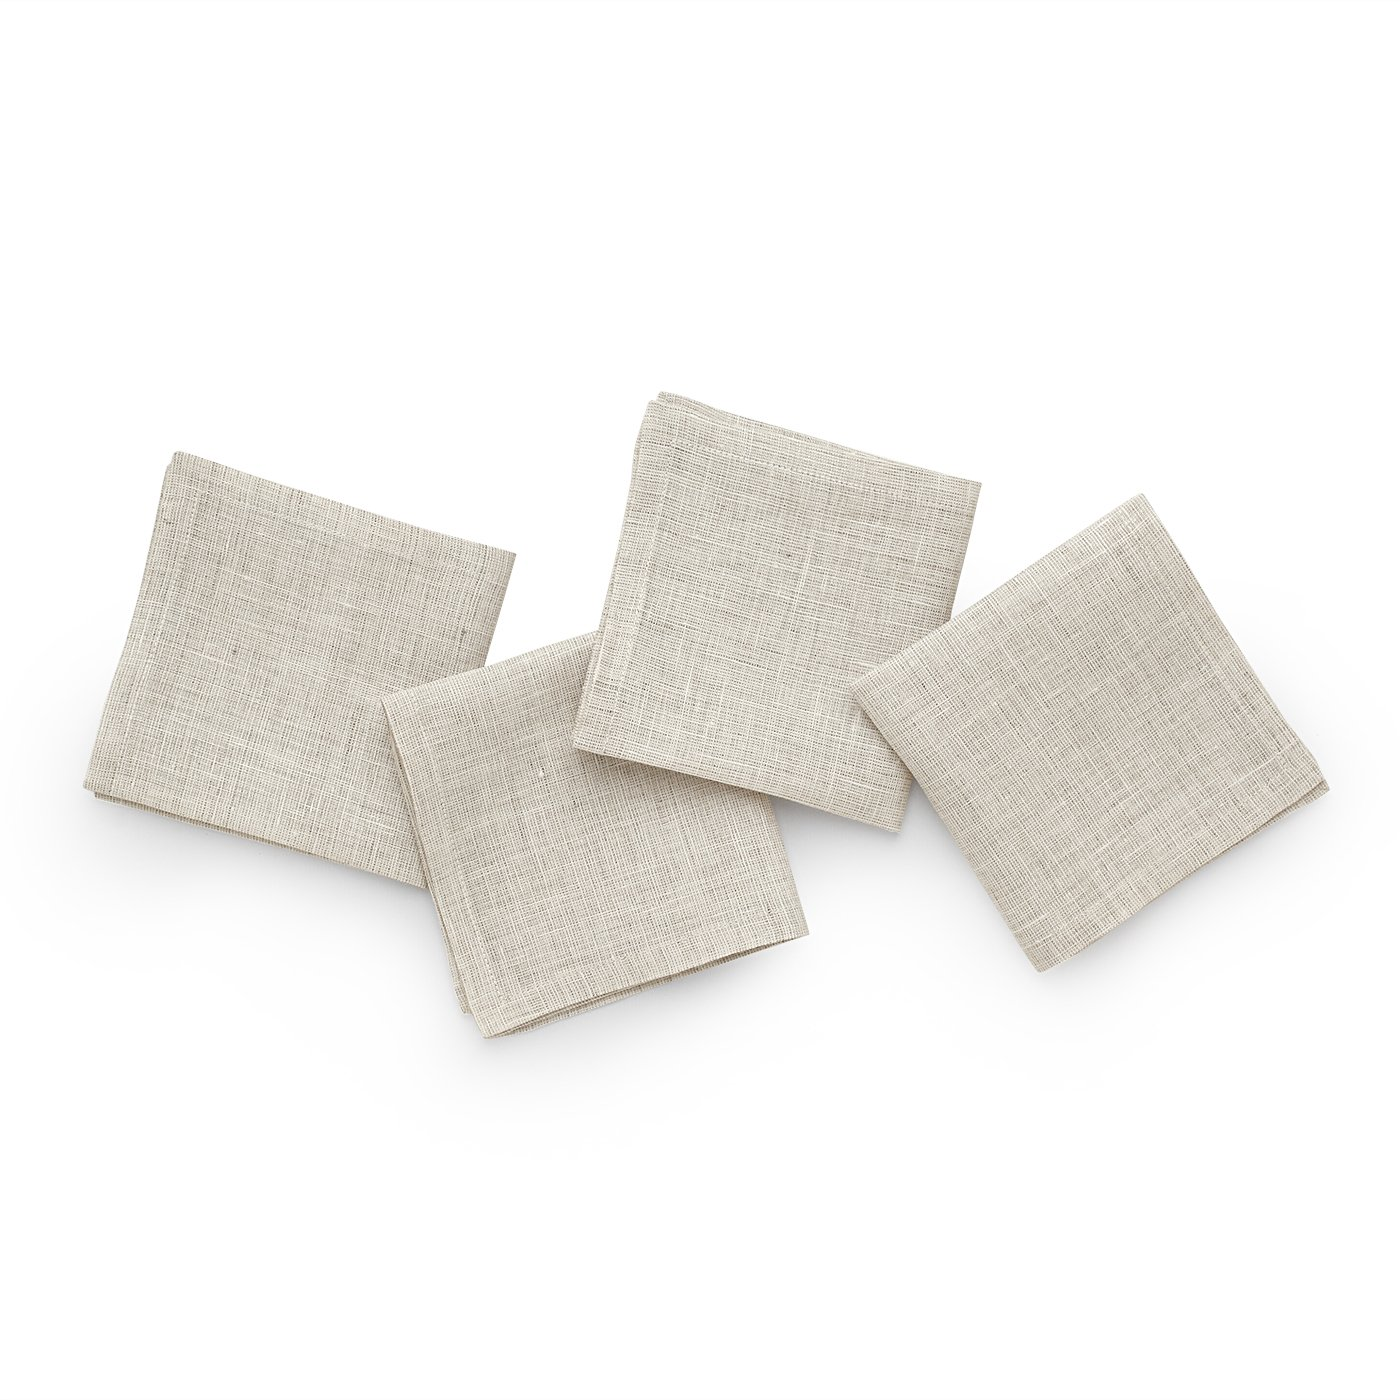 Solino Home Linen Cocktail Napkins - 9 x 9 Inch White Ash, 4 Pack Pure Linen Napkins, Bella - 100% European Flax - Soft and Handcrafted with Mitered Corners